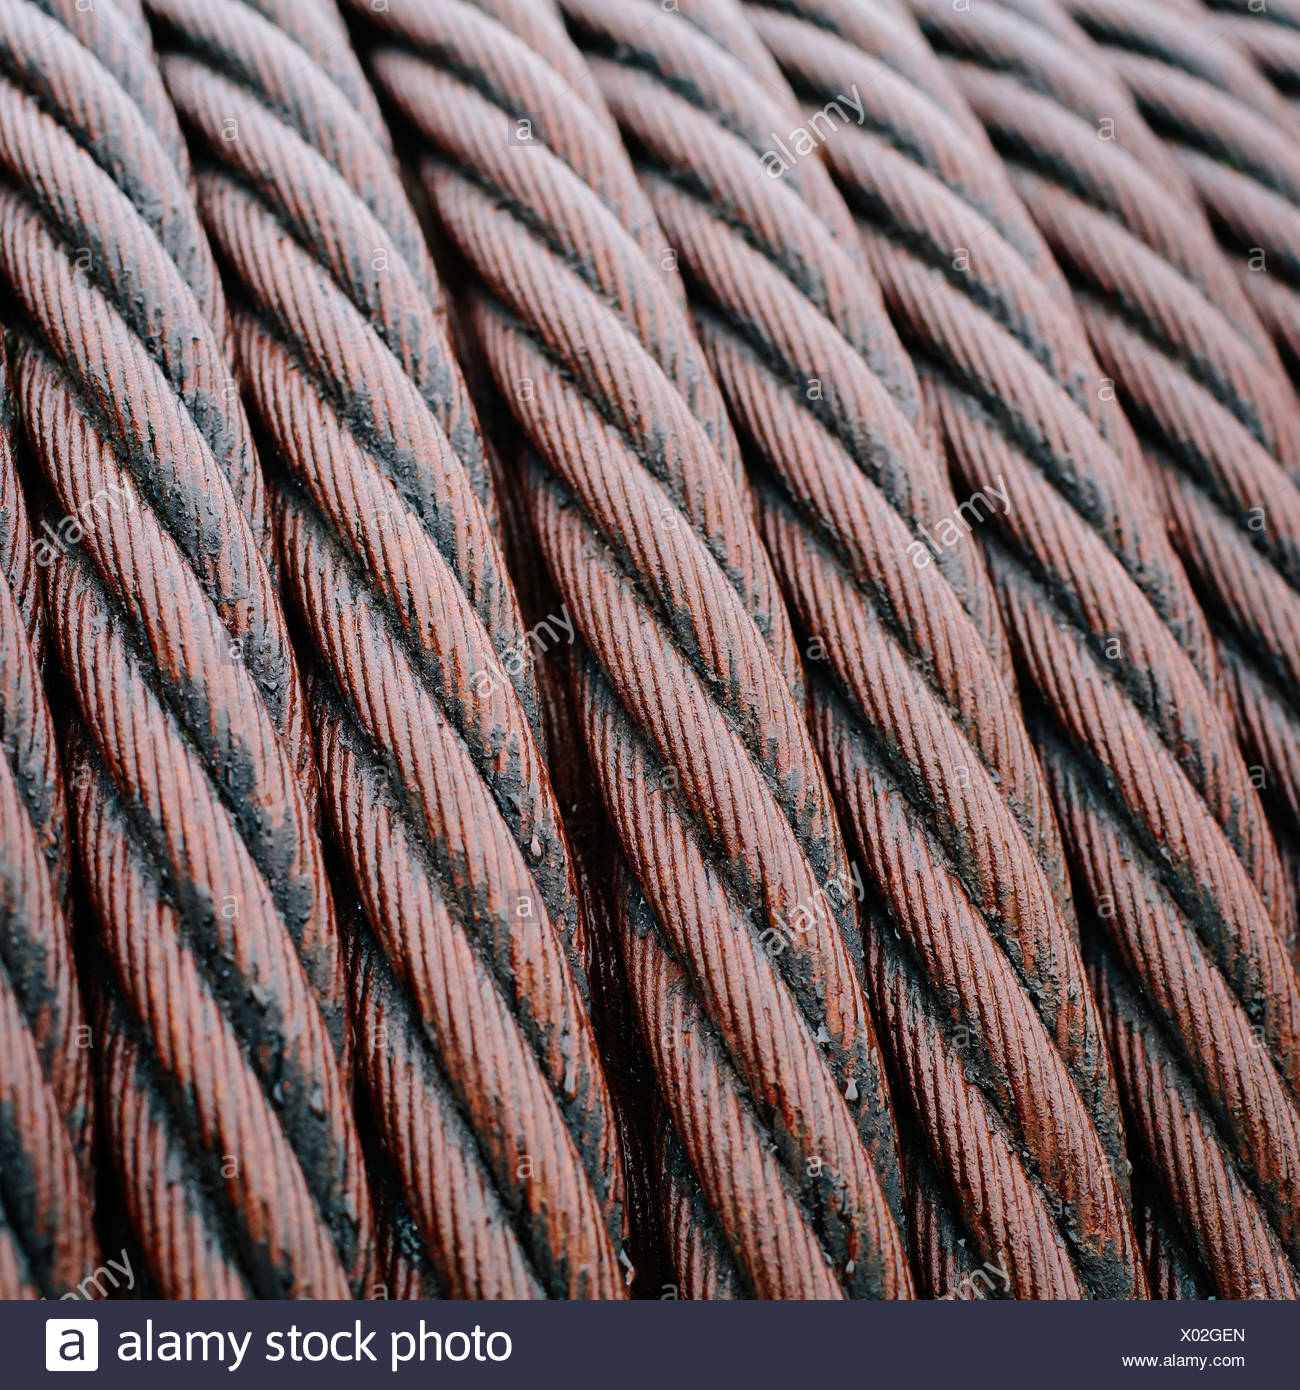 Close up of industrial steel hawsers stored neatly. - Stock Image